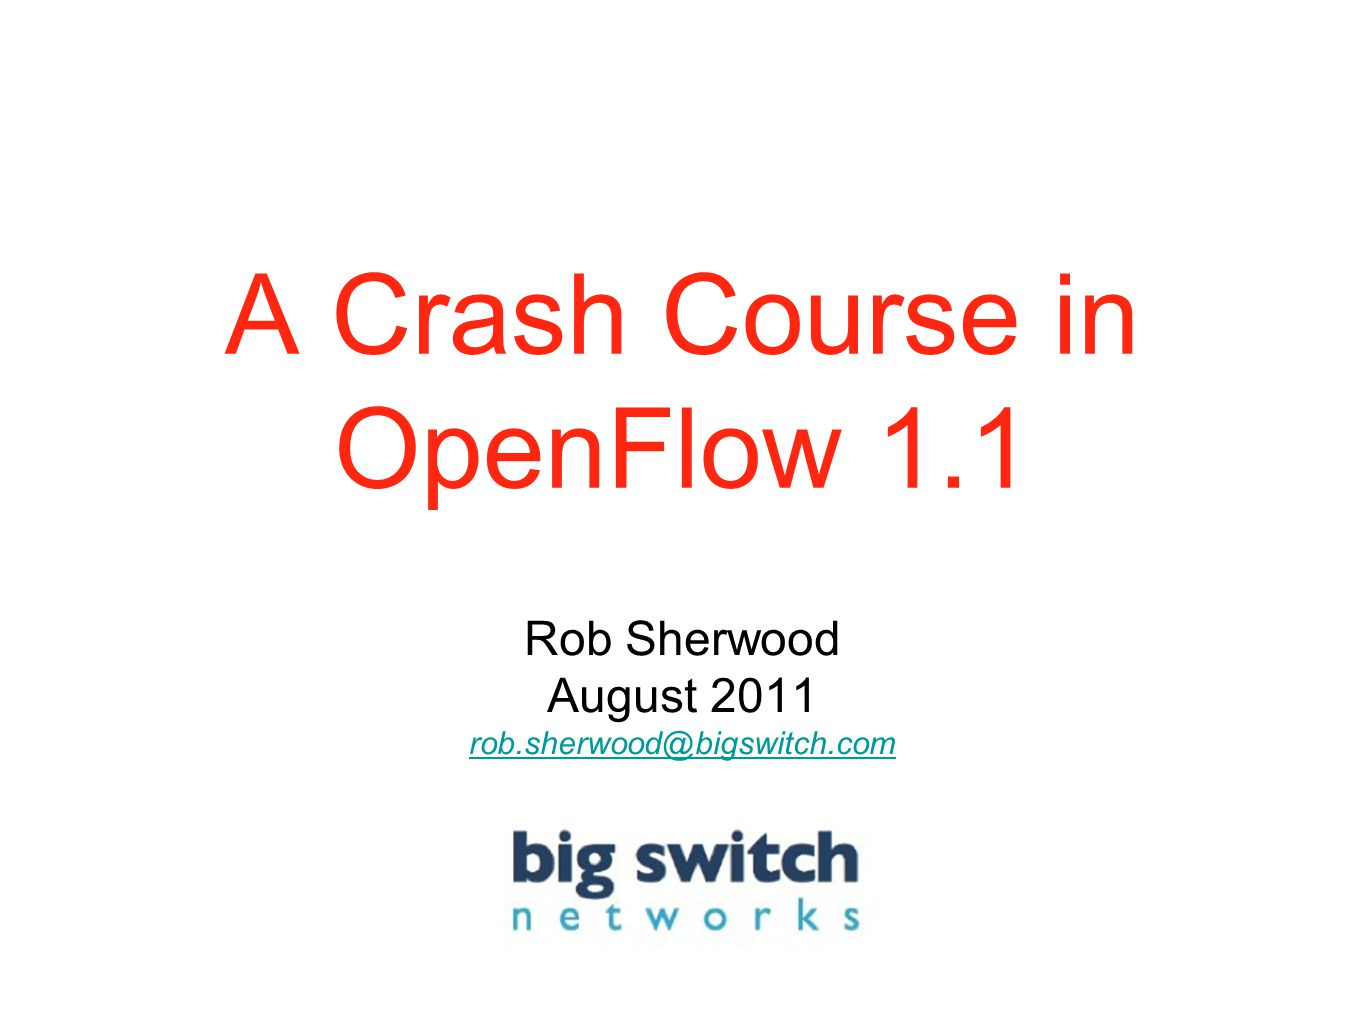 A Crash Course in OpenFlow 1.1 Rob Sherwood August 2011 rob.sherwood@bigswitch.com